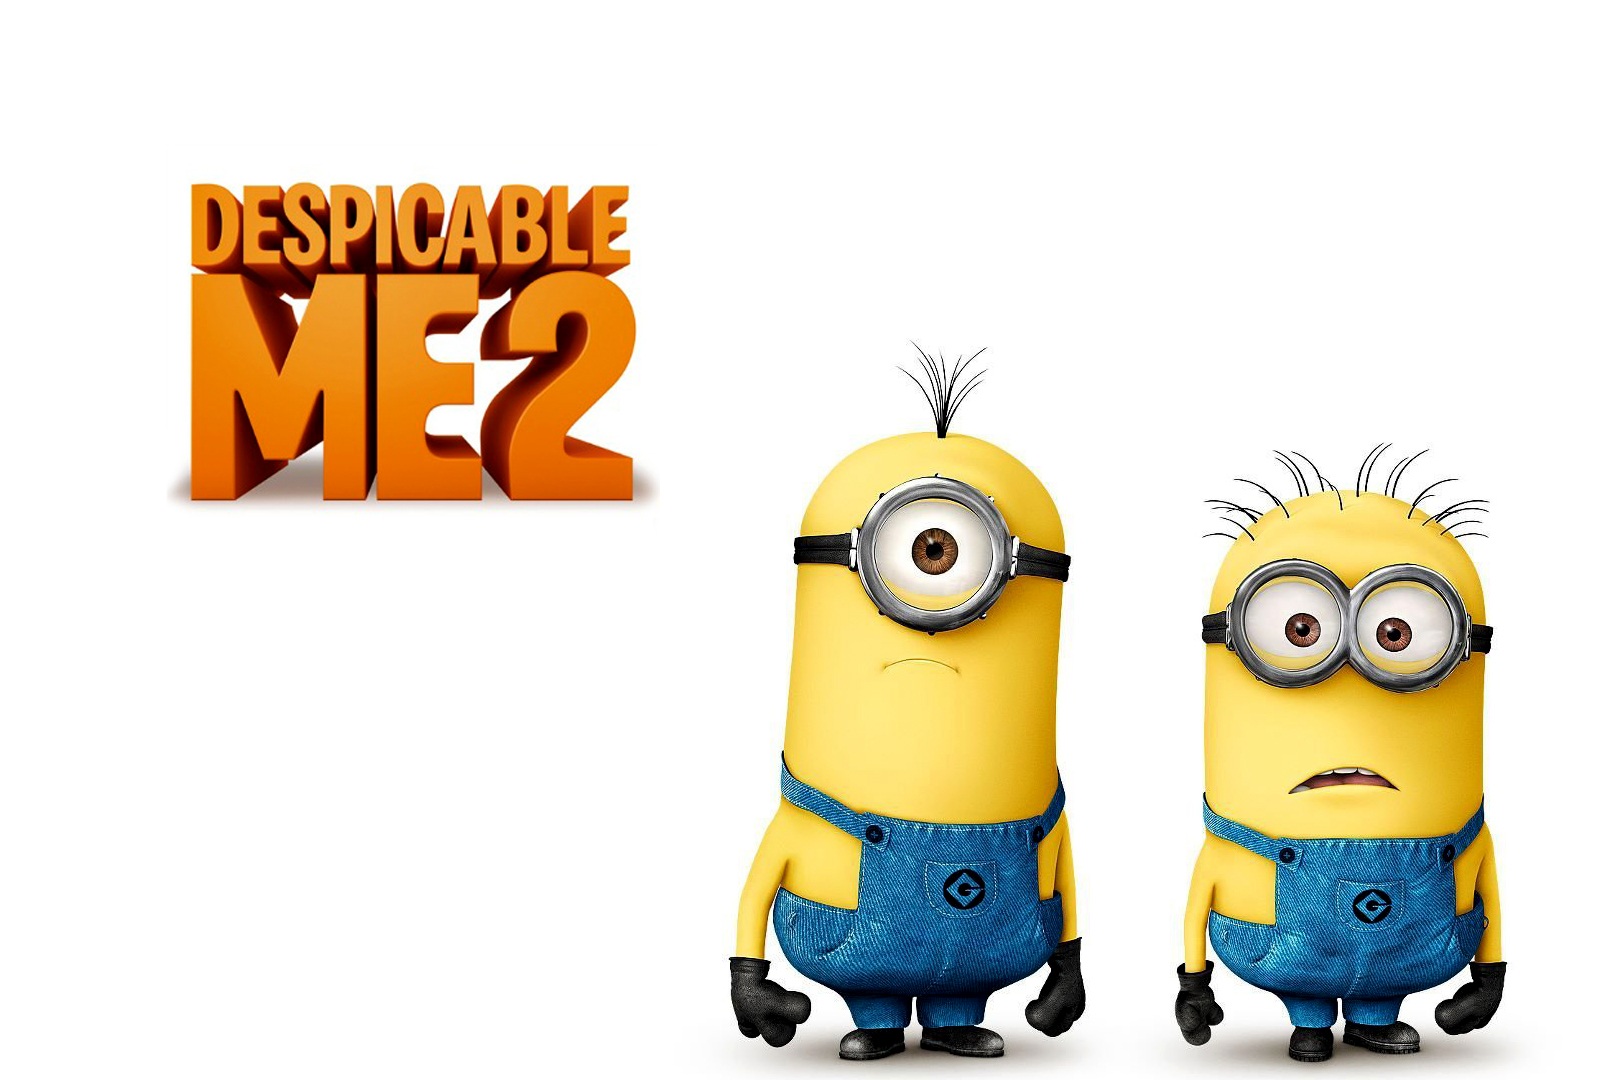 Despicable Me 2 Animation Movie 2013 HD WallpapersDespicable Me Wallpaper